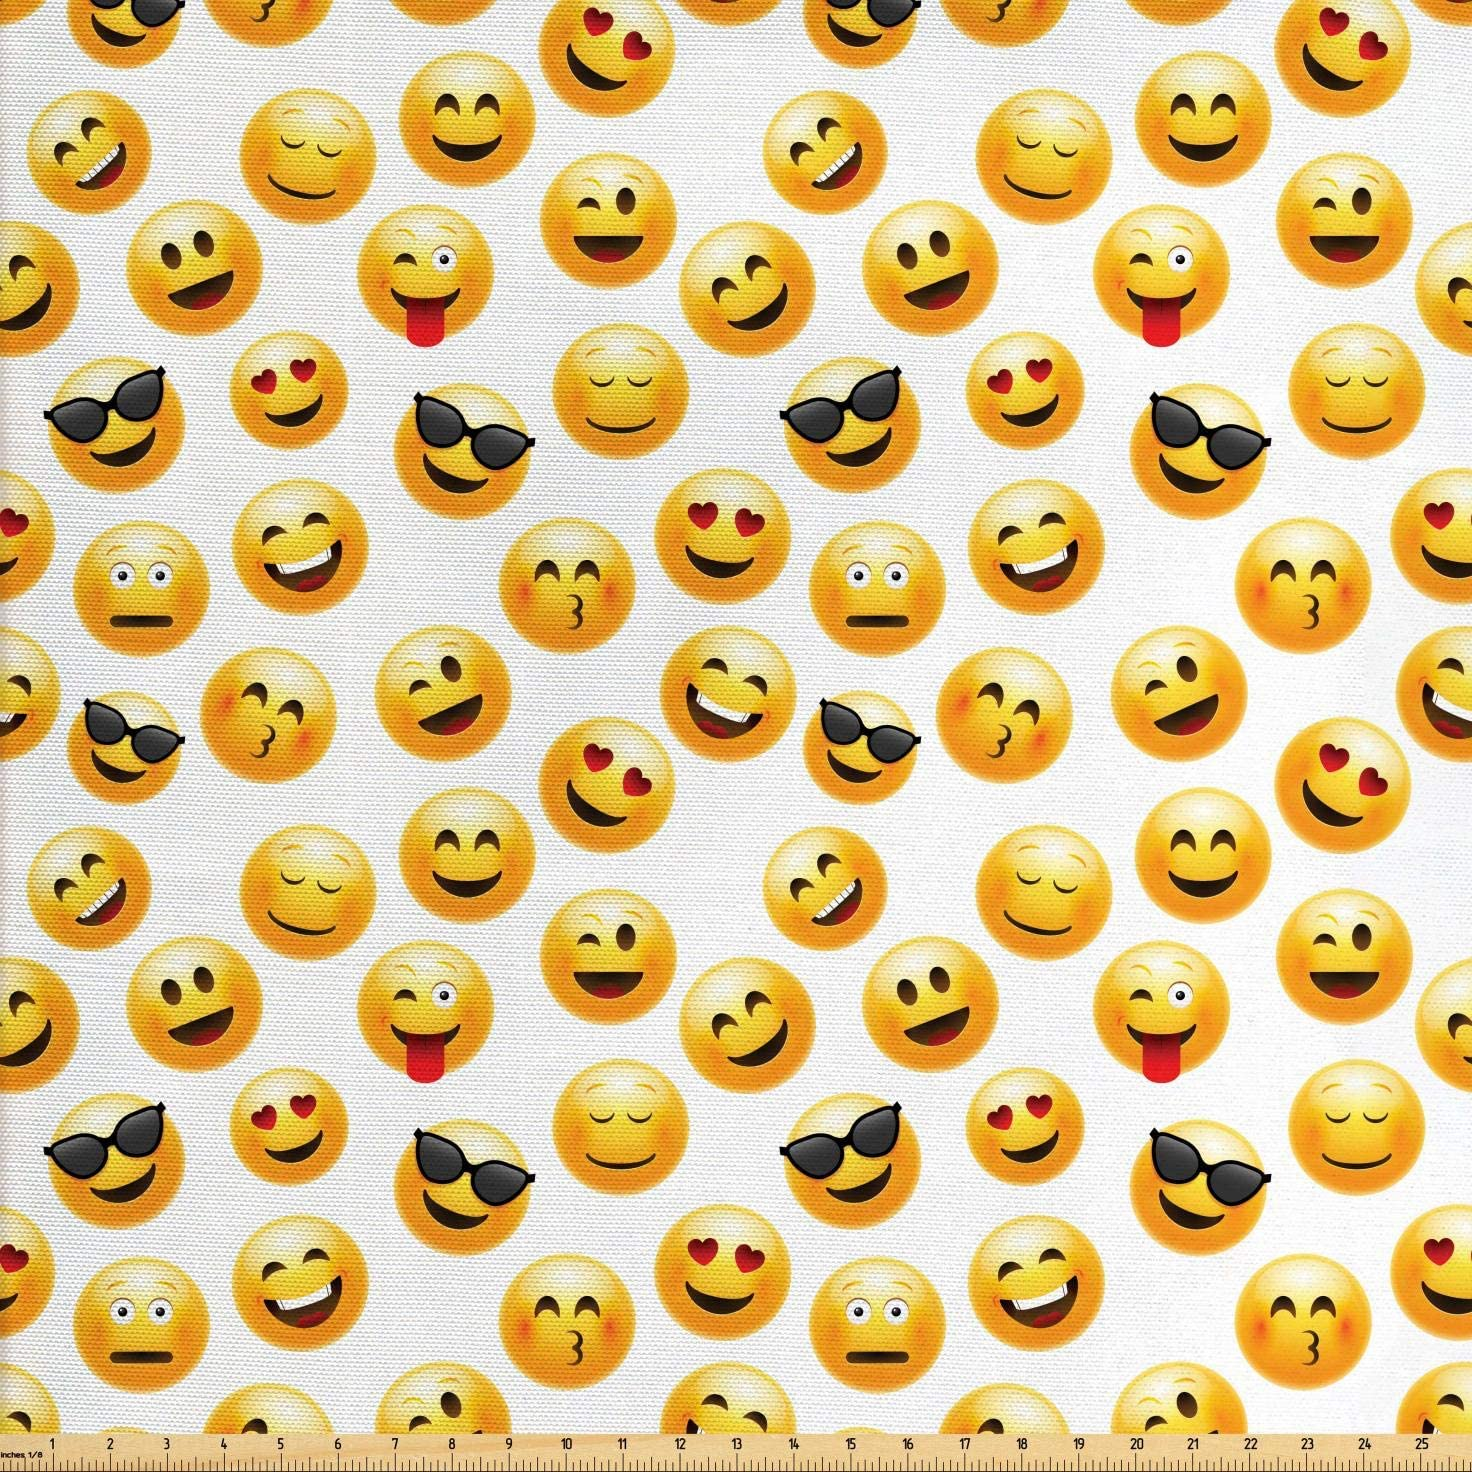 Ambesonne Emoji Fabric by The Yard, Smiley Face Character Illustration Feeling Happy Surprised Cool and in Love, Decorative Fabric for Upholstery and Home Accents, 5 Yards, Yellow Black